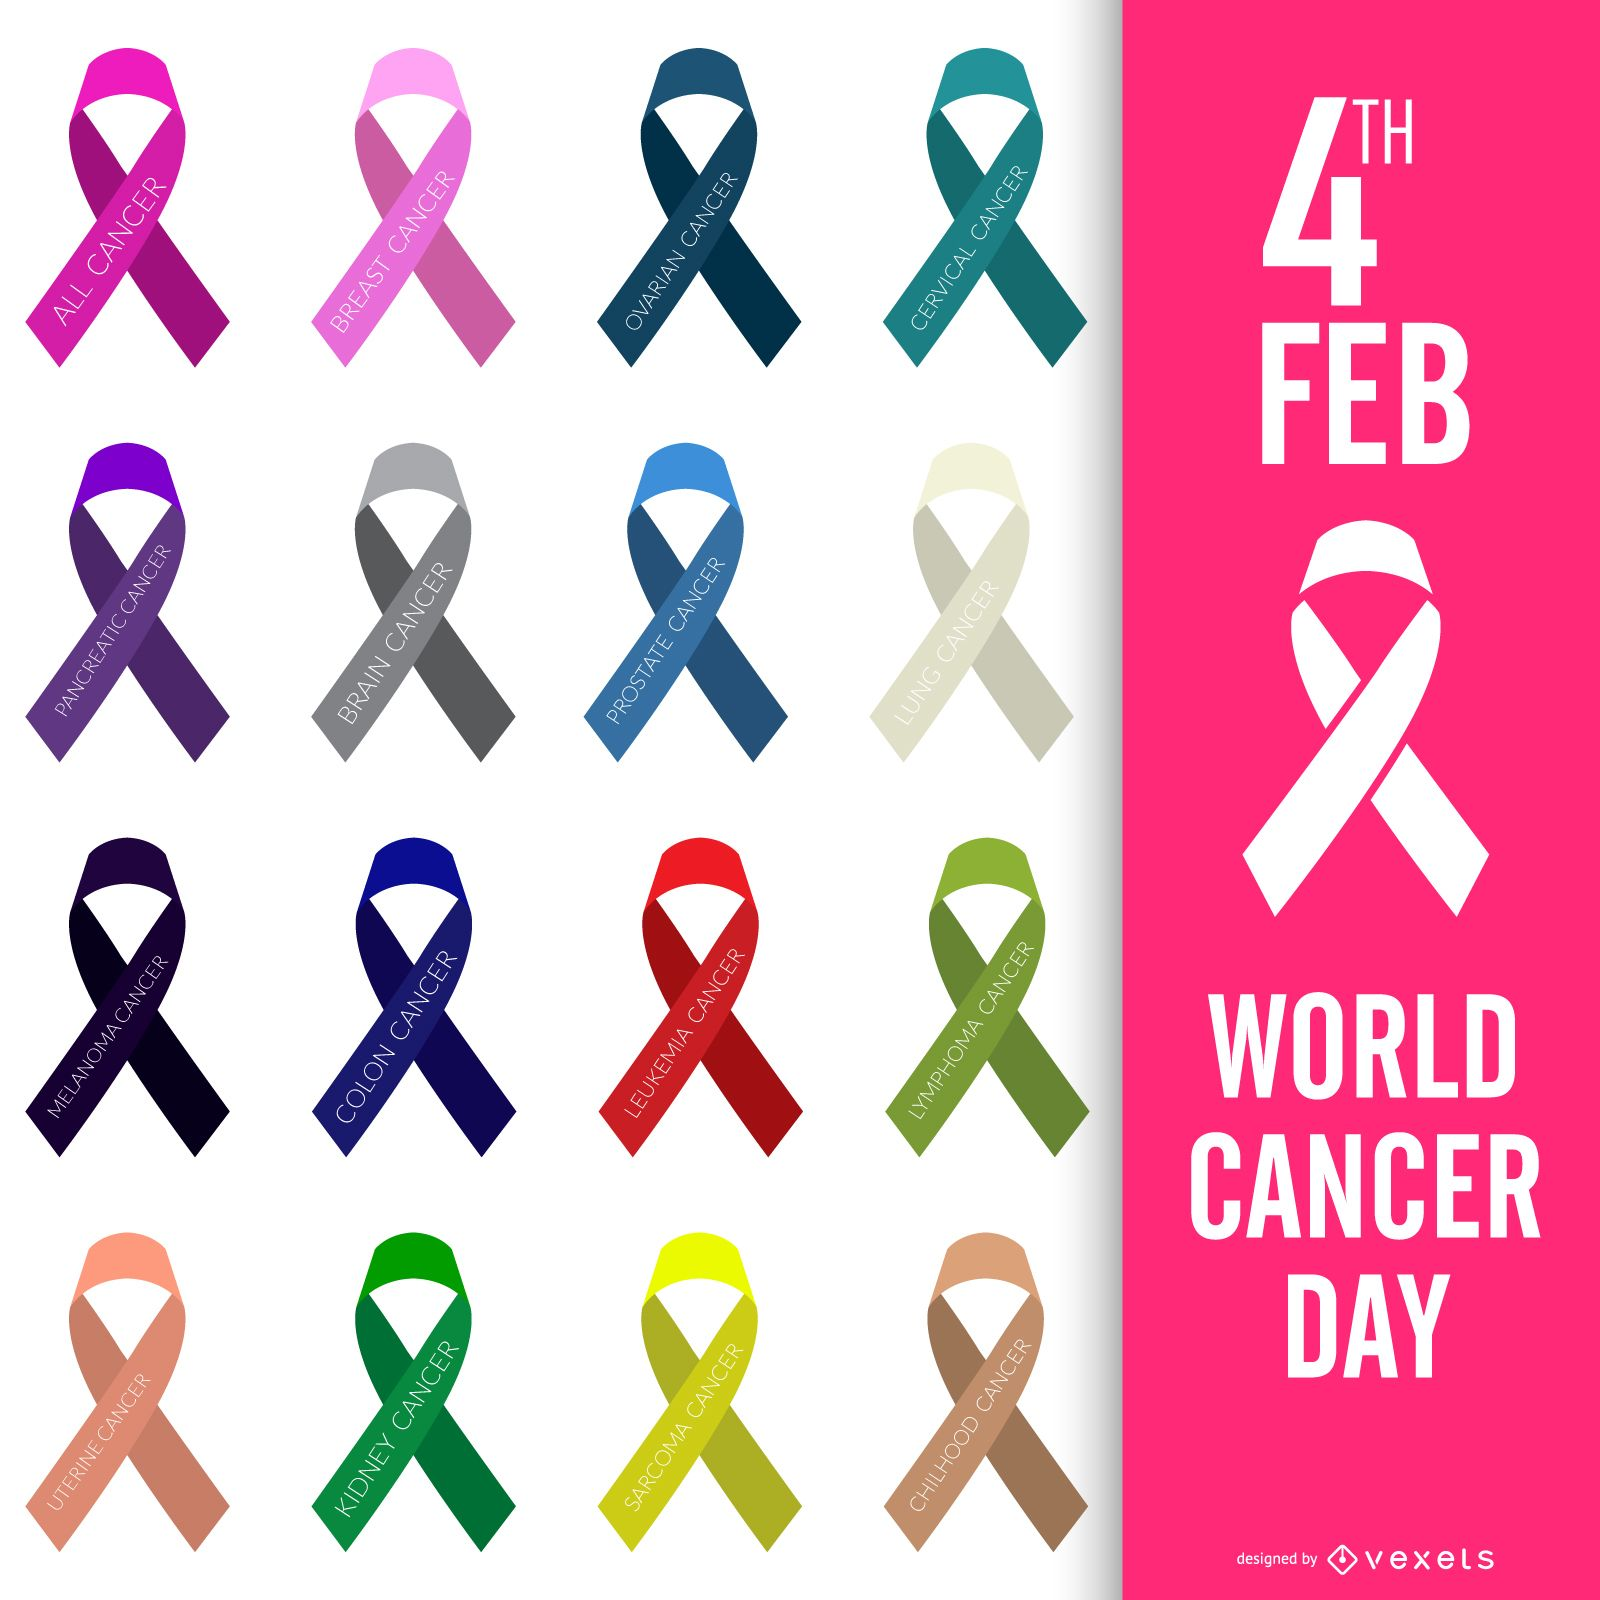 World Cancer Day poster colored ribbons